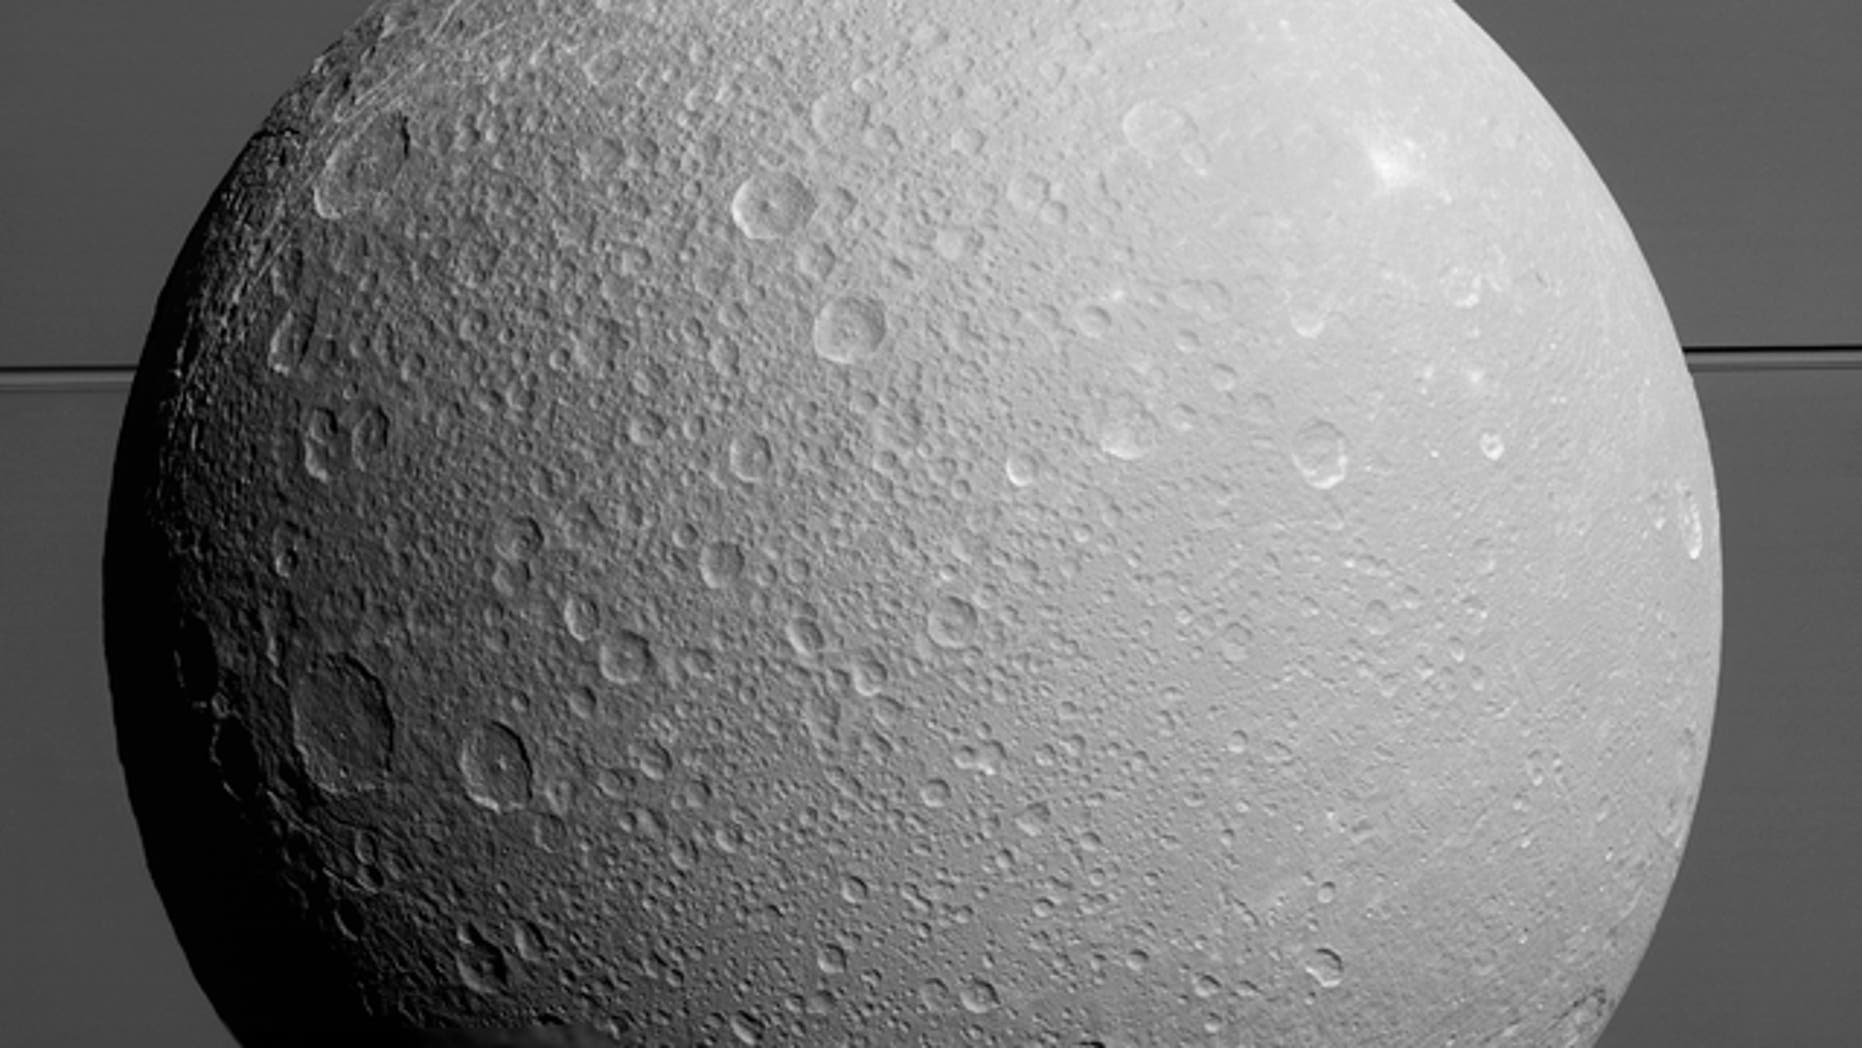 This view from NASA's Cassini spacecraft looks toward Saturn's icy moon Dione, with giant Saturn and its rings in the background, just prior to the mission's final close approach to the moon on August 17, 2015.